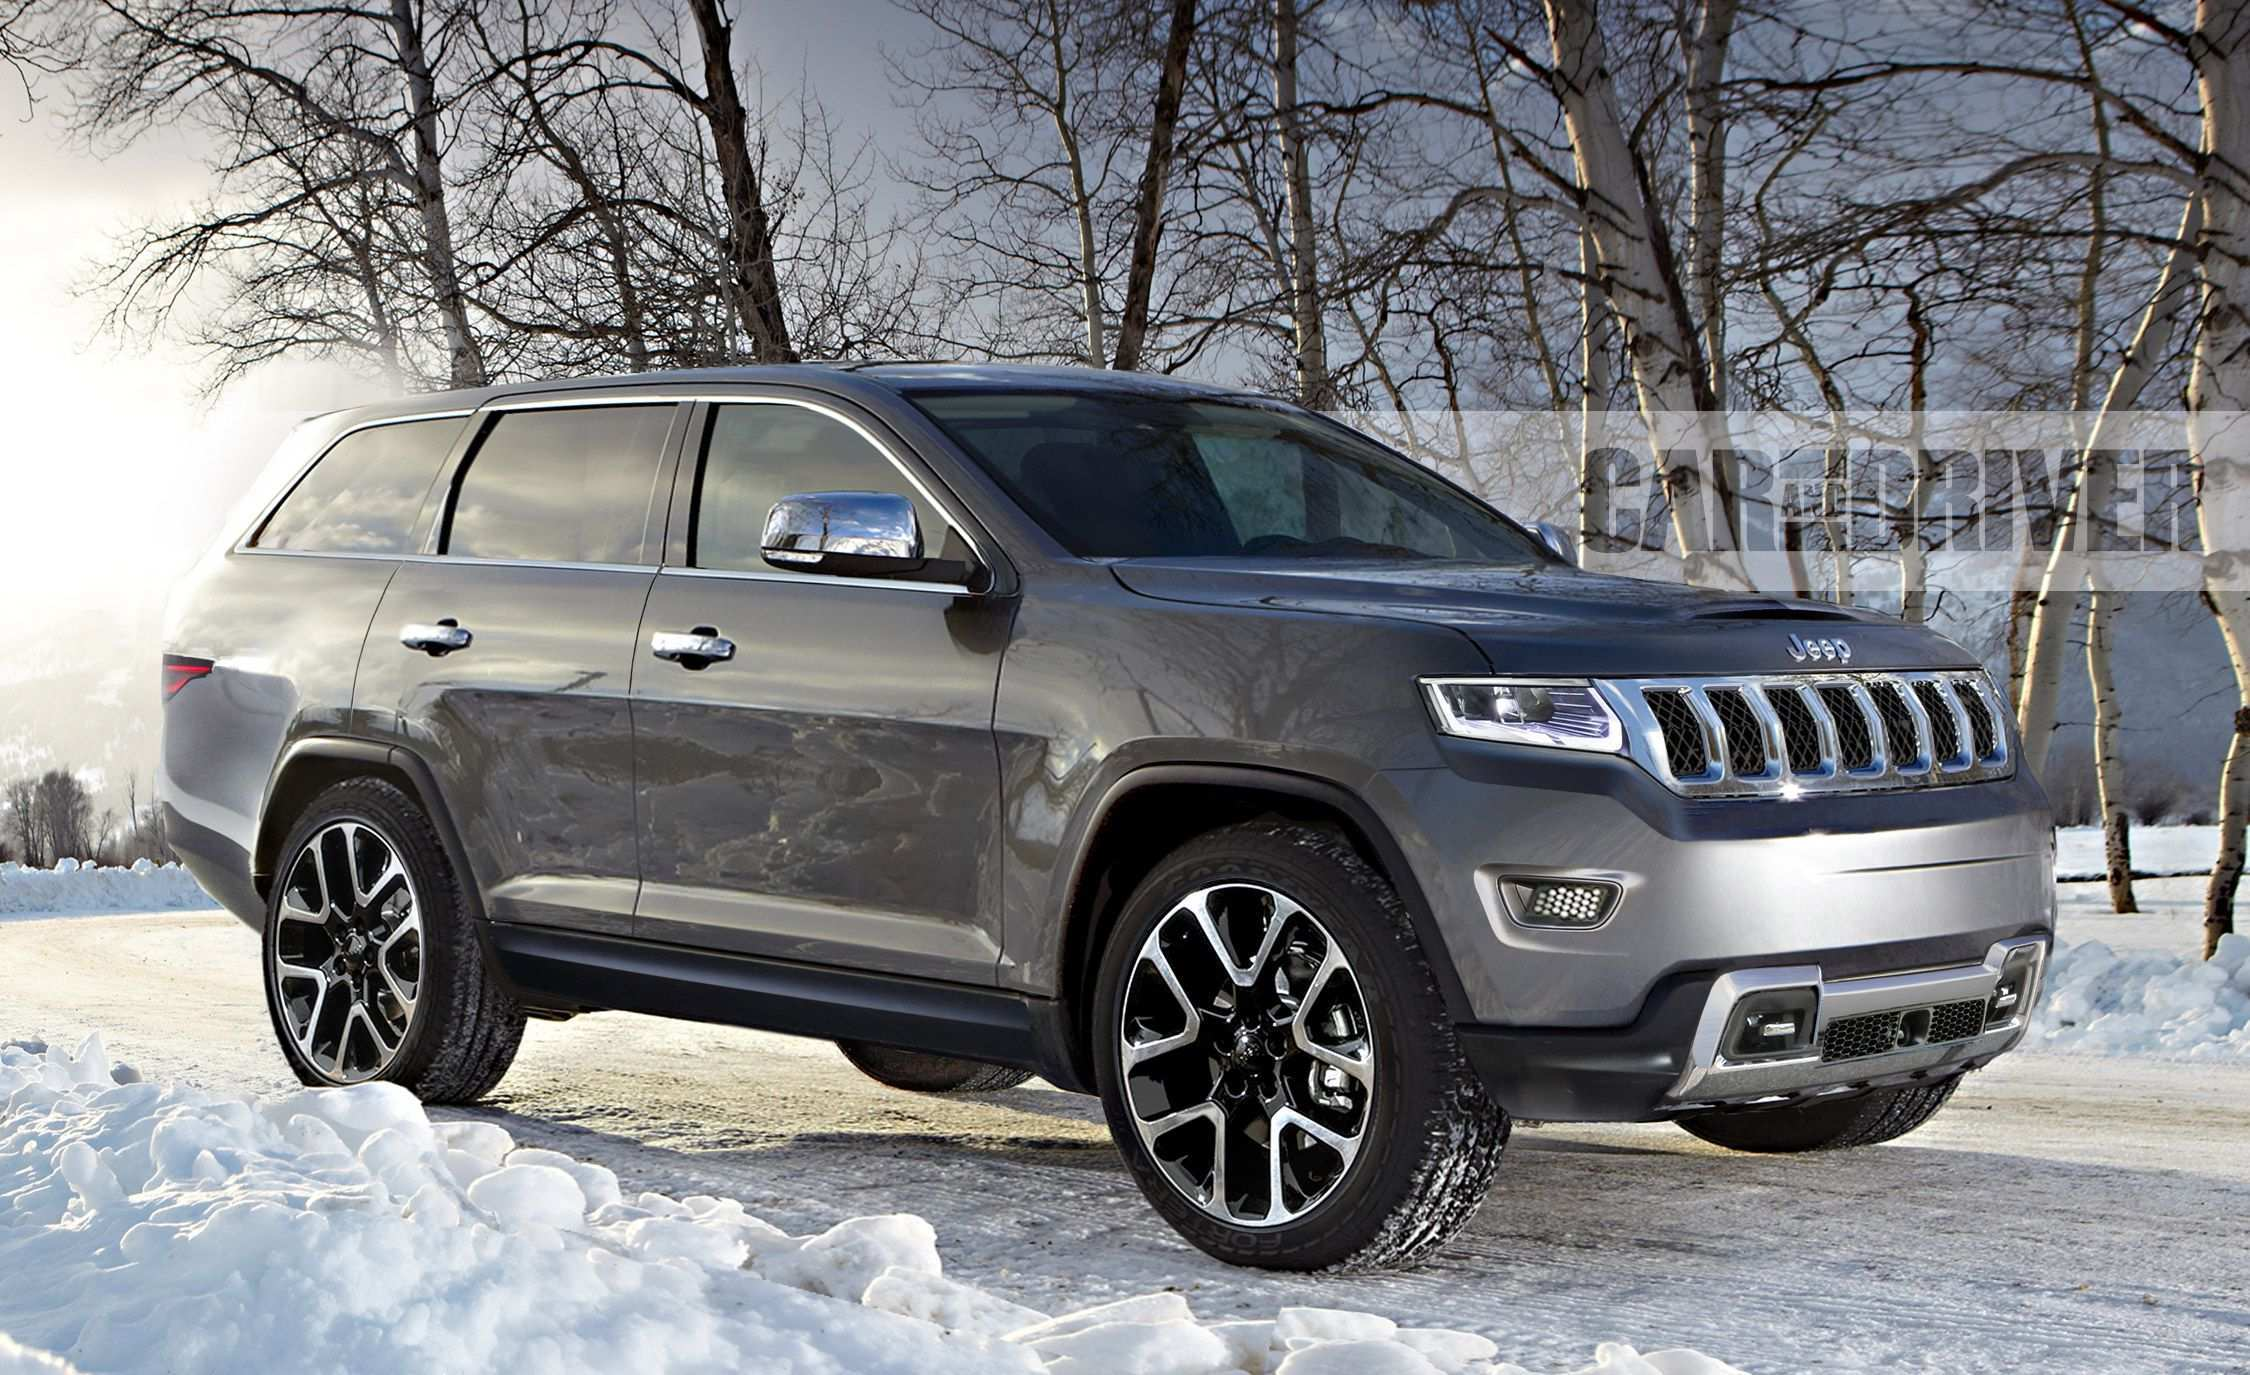 69 Best Review 2020 Jeep Vehicles Ratings with 2020 Jeep Vehicles